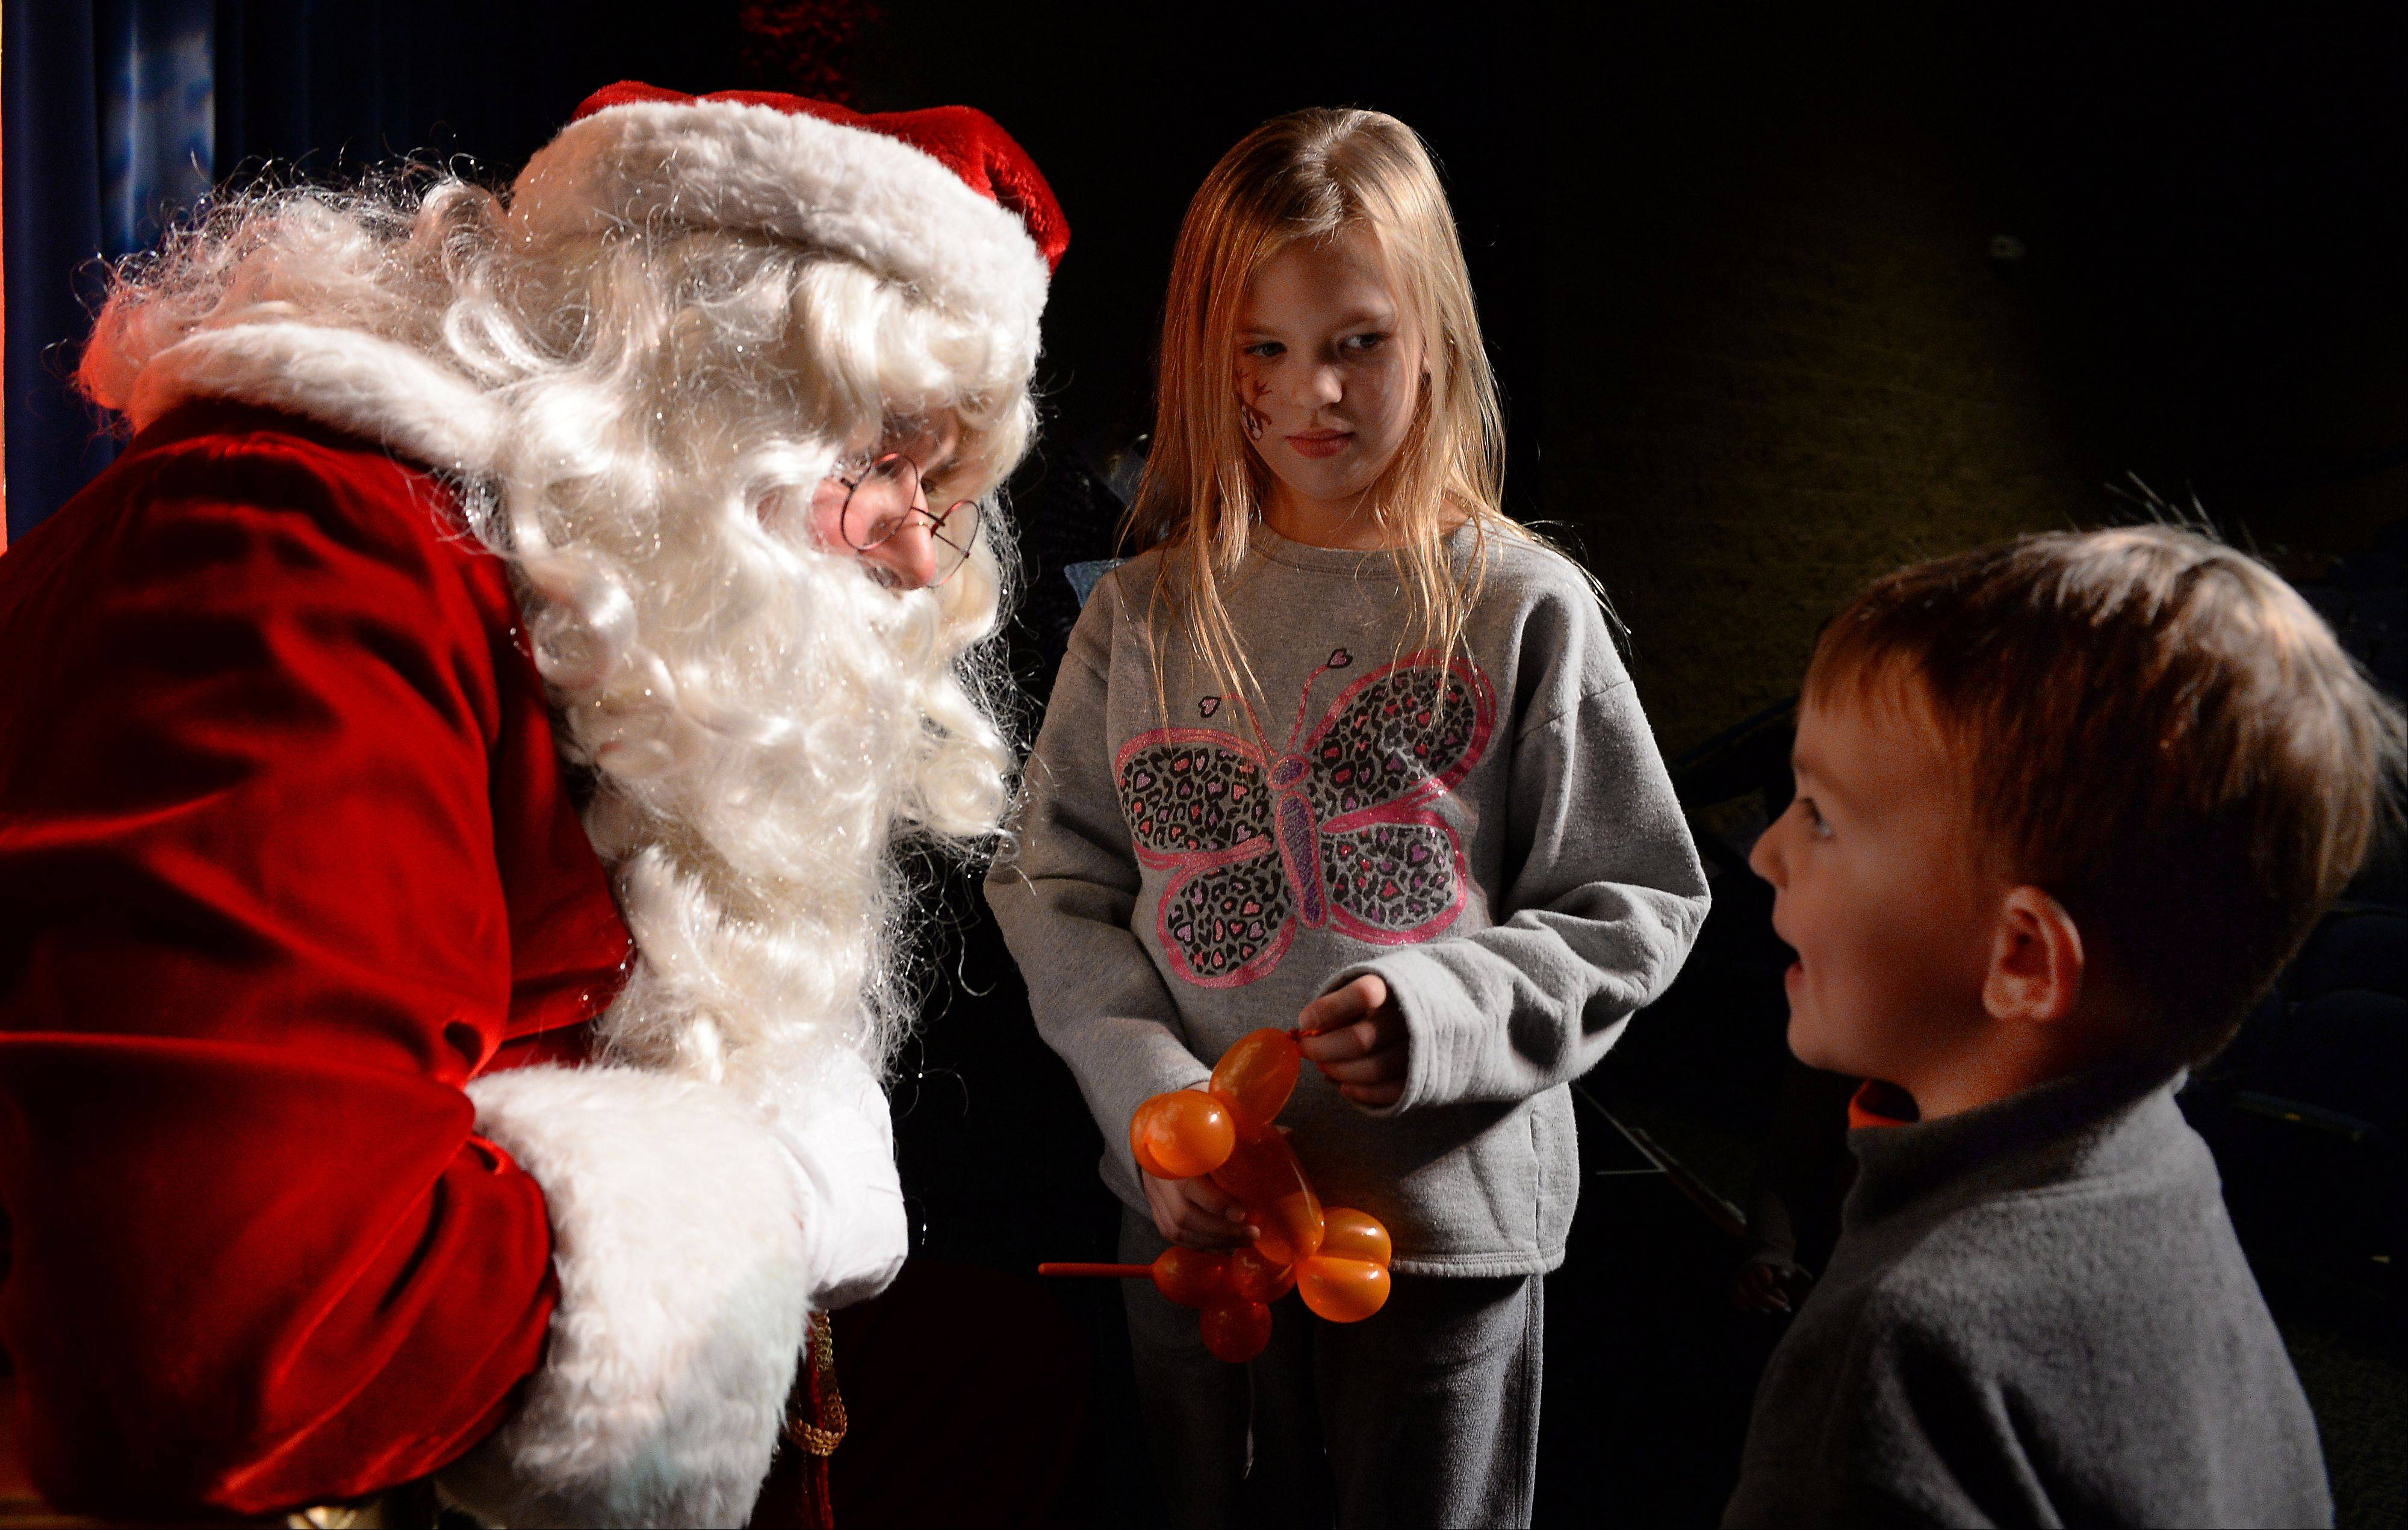 Santa arrived at the Prairie Center for the Arts in Schaumburg on Friday just in time to find out what Alexa Neis, 7, and her brother Evan, 4, wanted for Christmas.